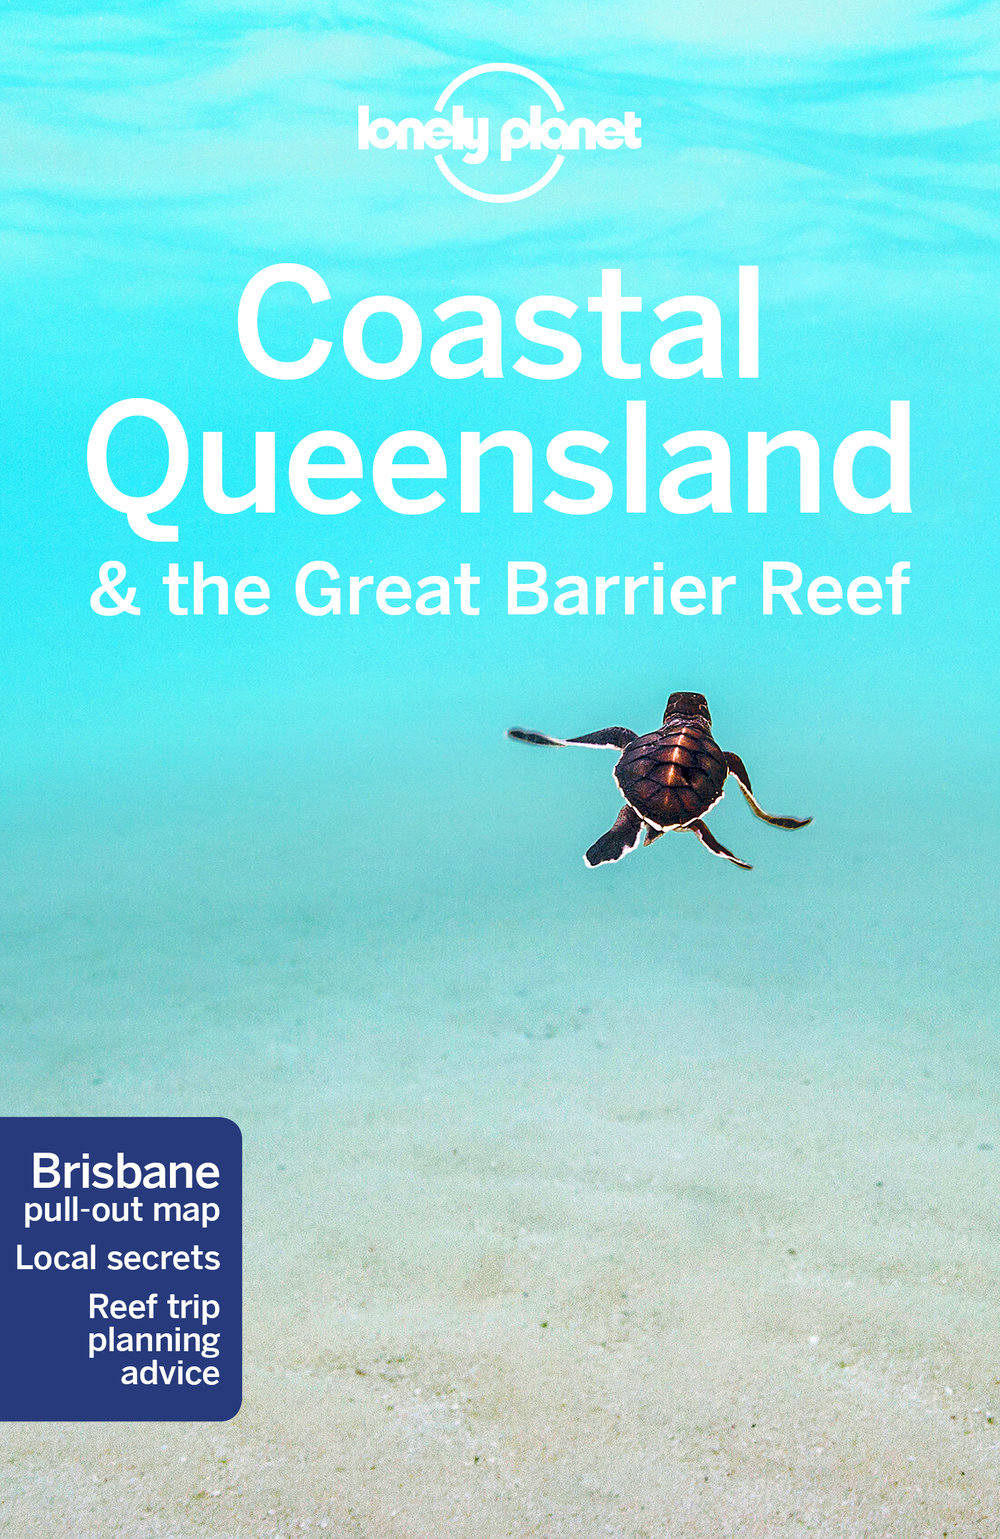 coastal qld and gbr.jpg